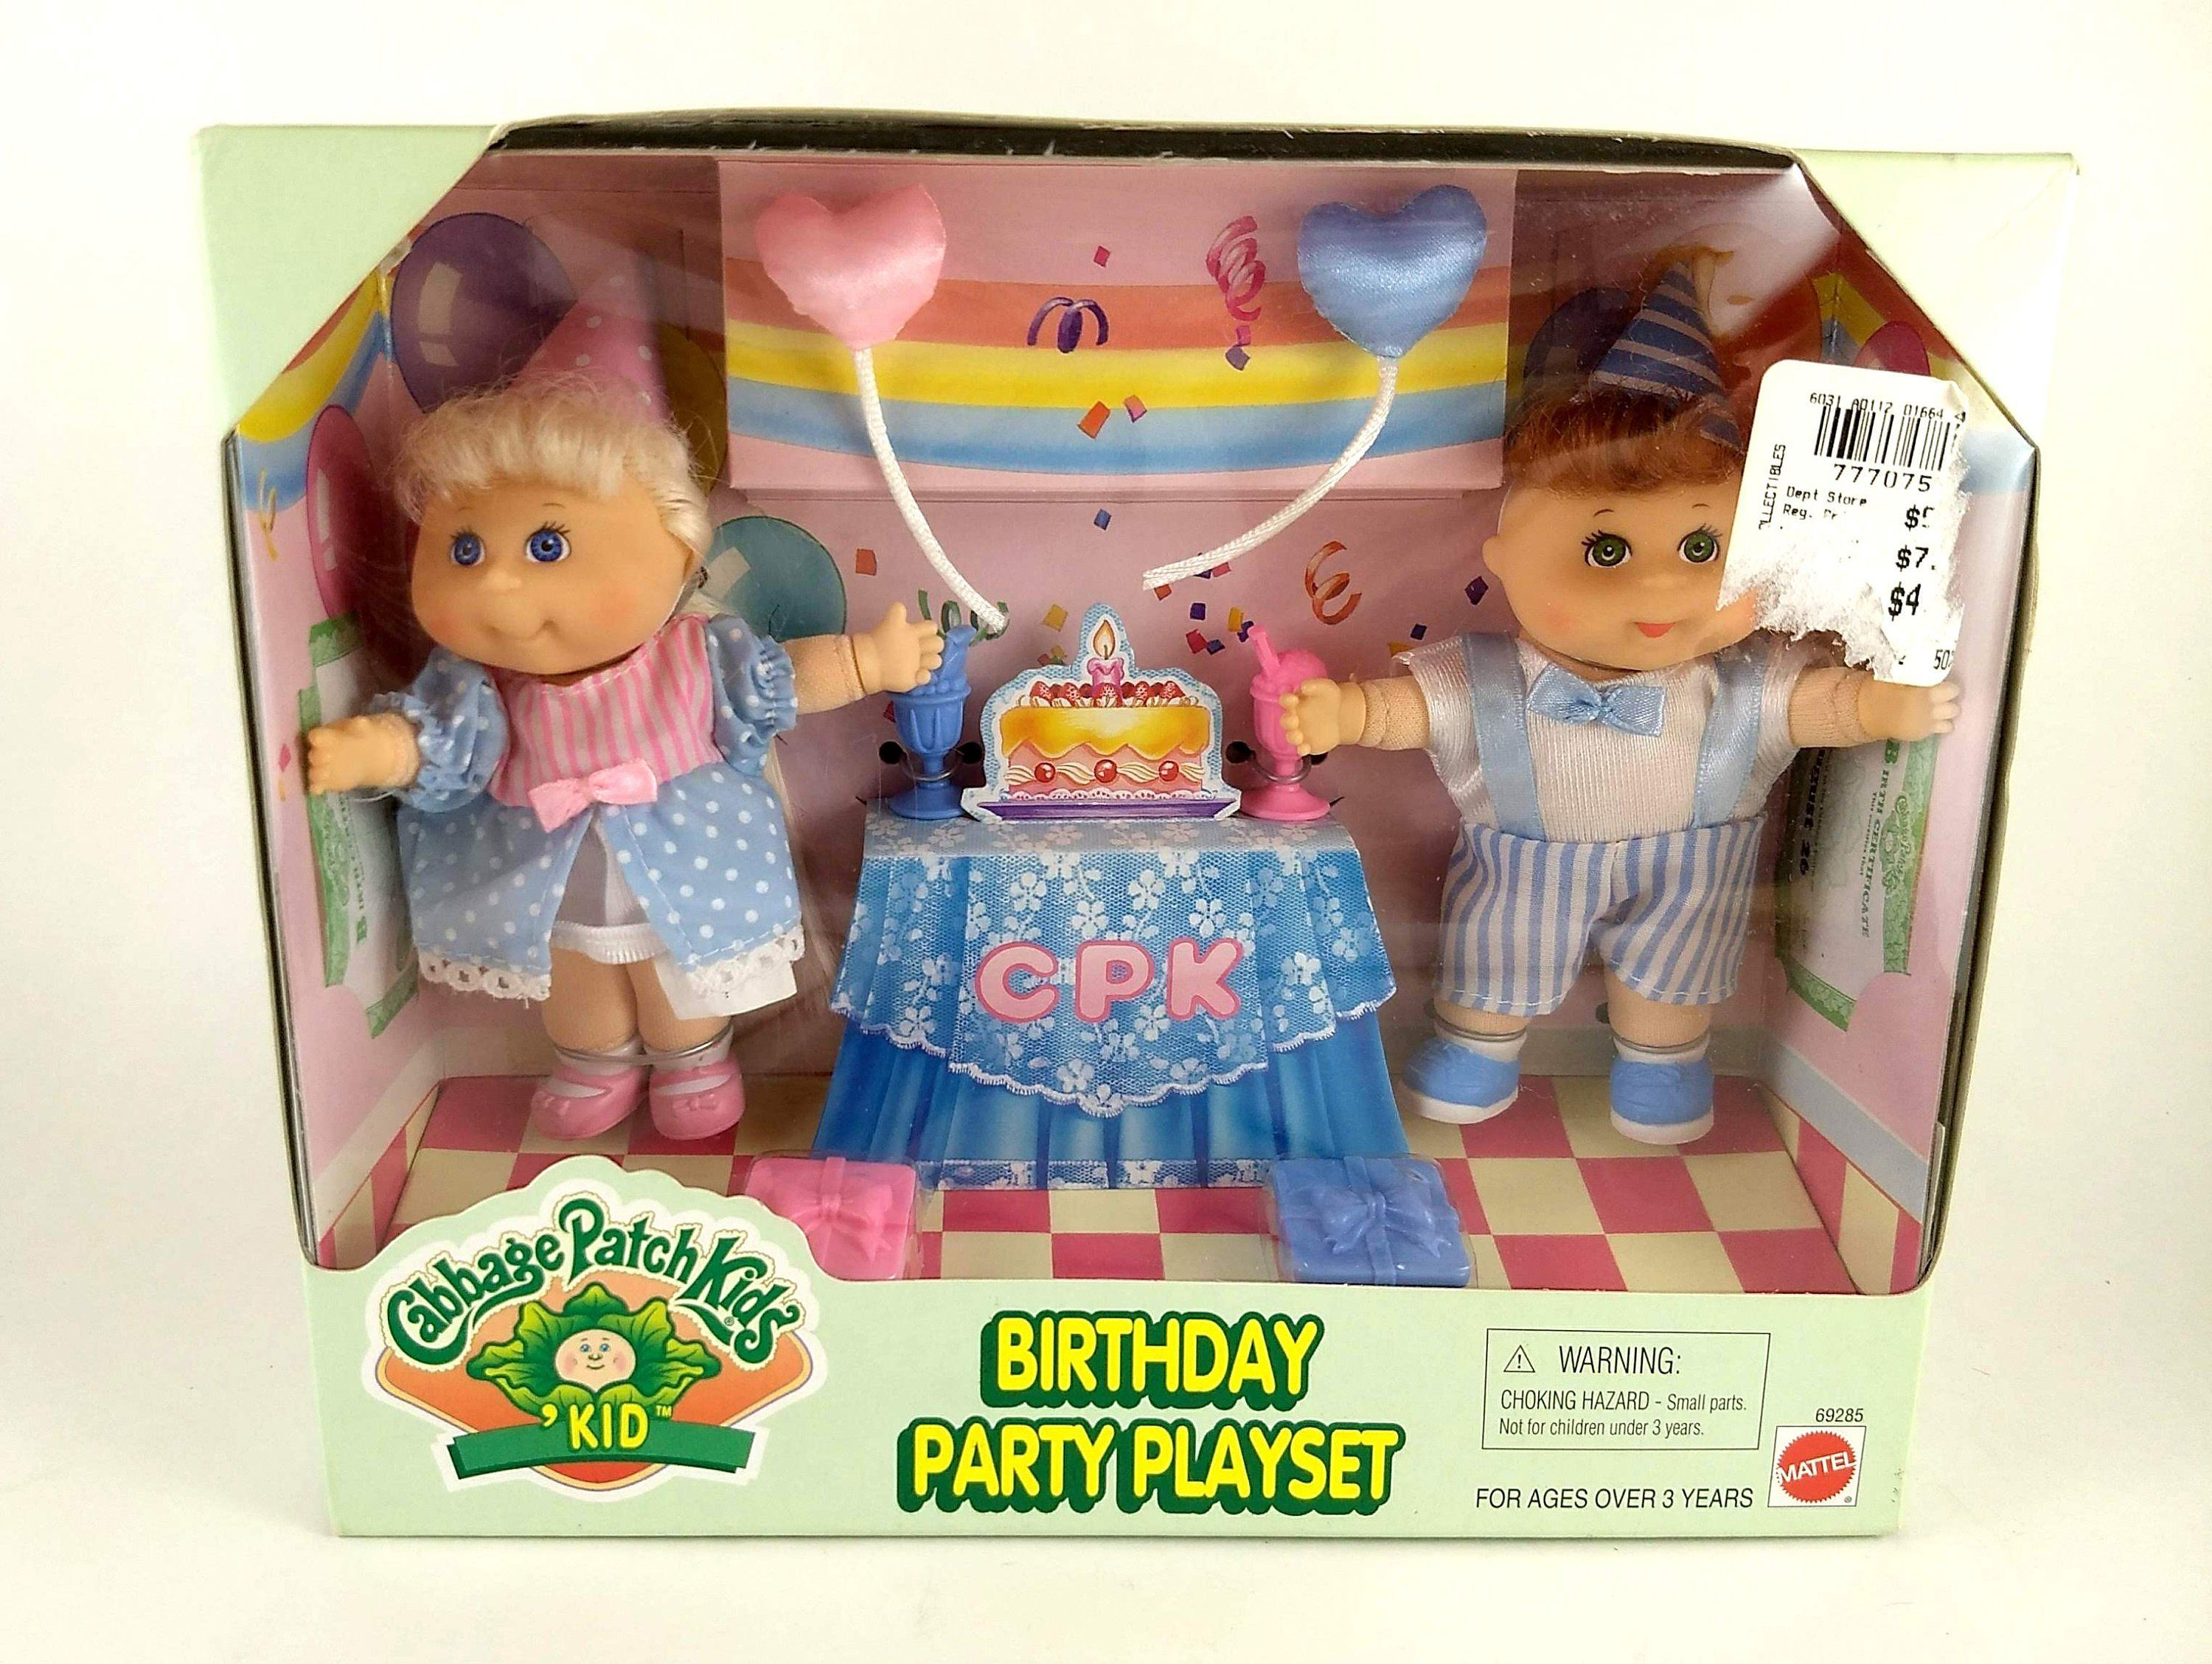 Sale 1997 Cabbage Patch Kids Birthday Party Playset Vintage Etsy Patch Kids Cabbage Patch Kids Cabbage Patch Babies